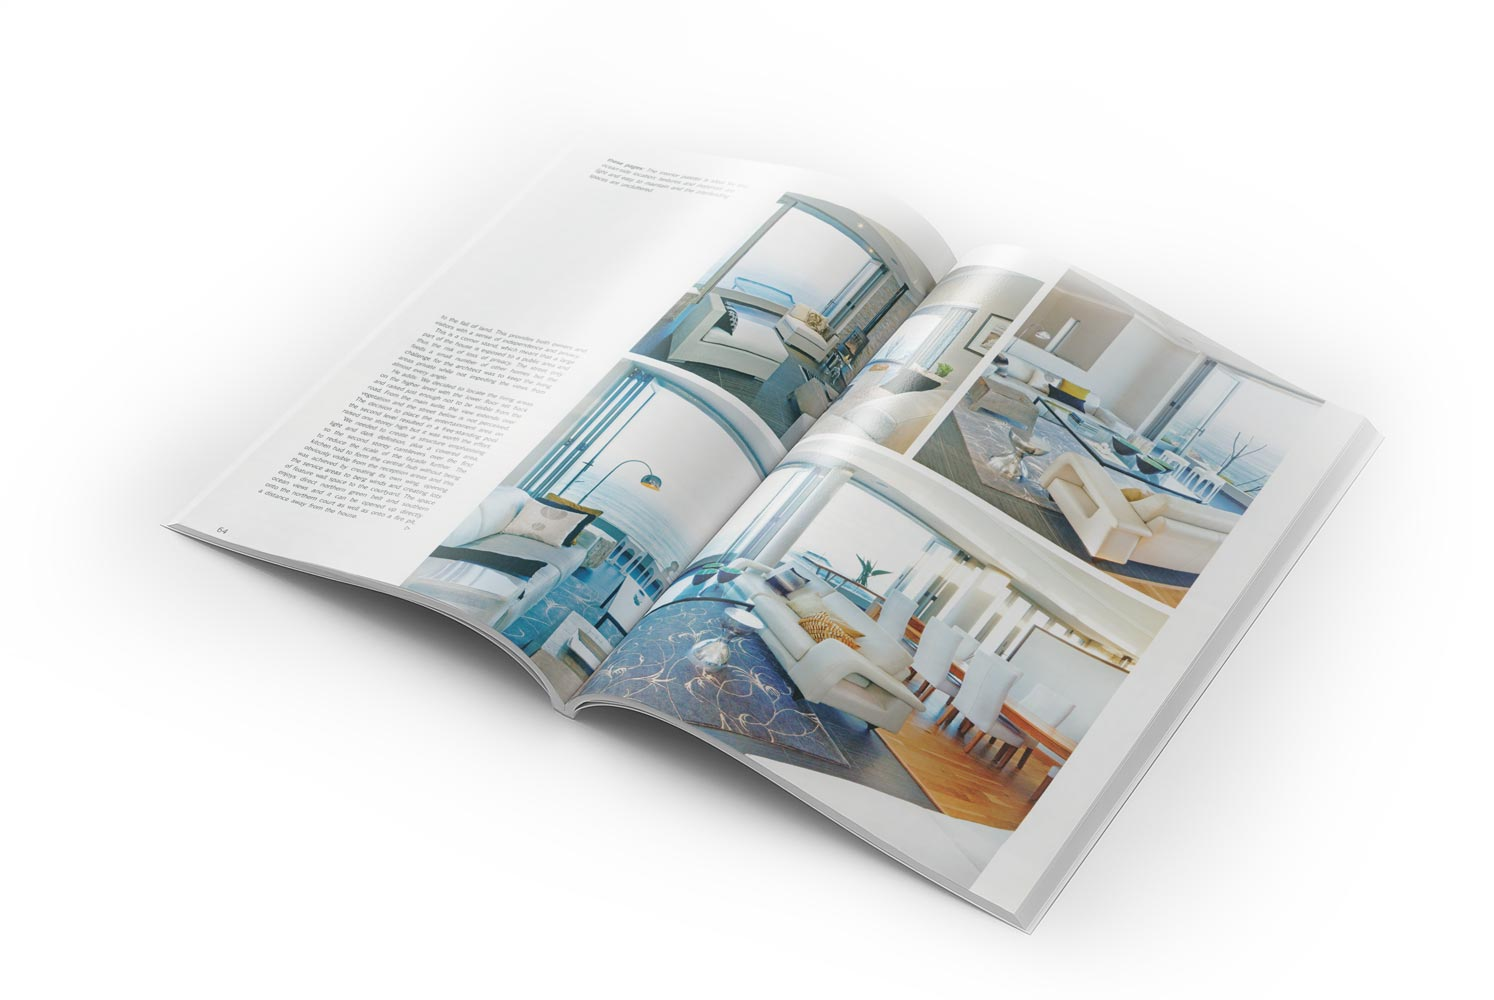 nieuwoudt-architects-habitat-september-october-2013-book-4